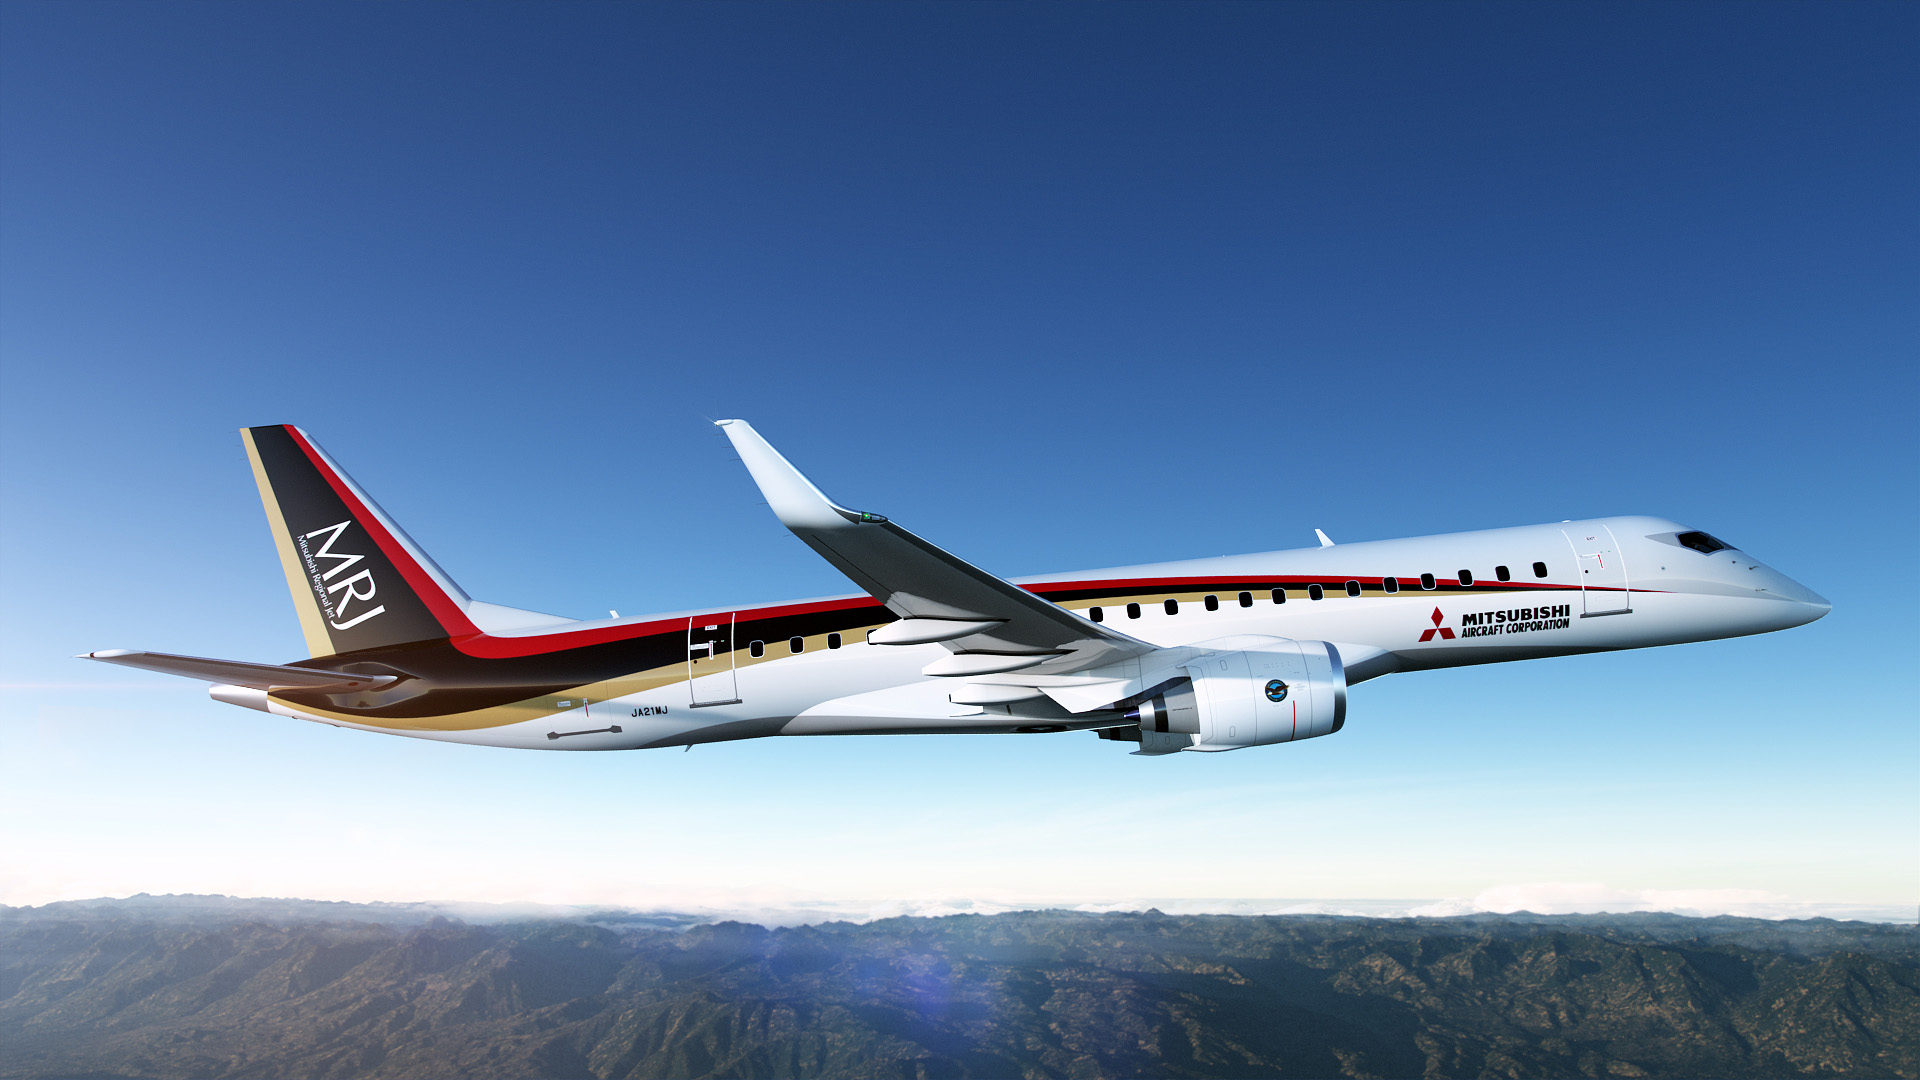 Mitsubishi's MRJ test flying making good progress - Leeham News and